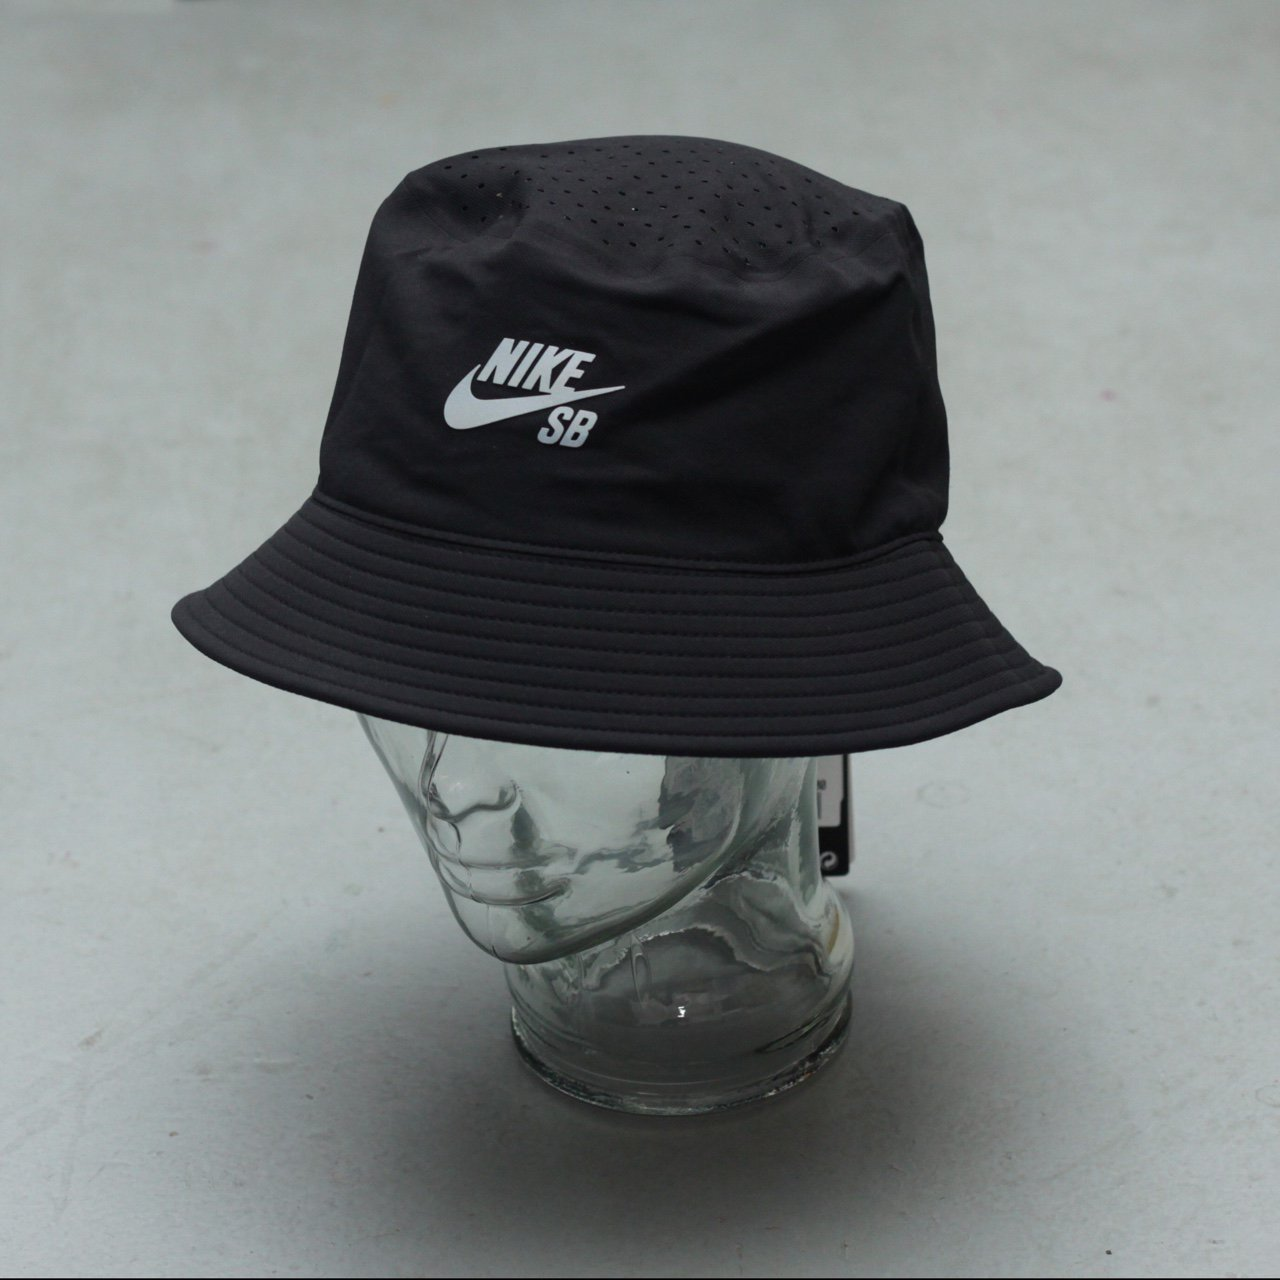 137306c208c Nike SB Performance Dri-Fit Bucket Hat - Black Silver - - - Depop